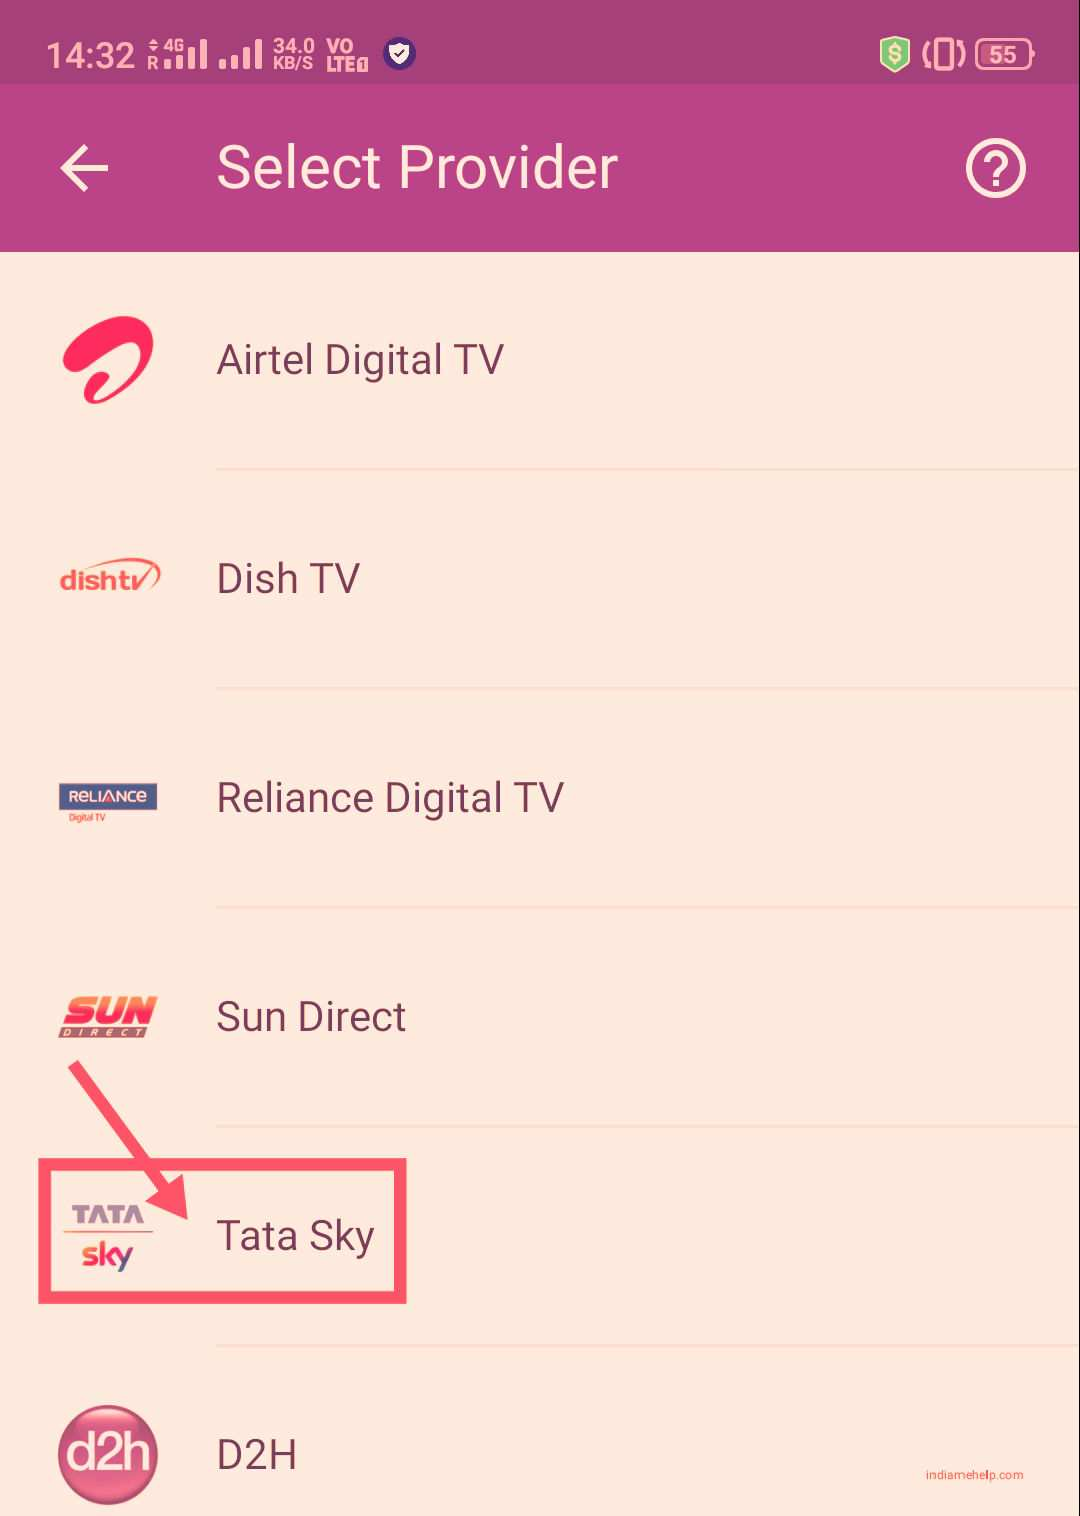 tata sky option